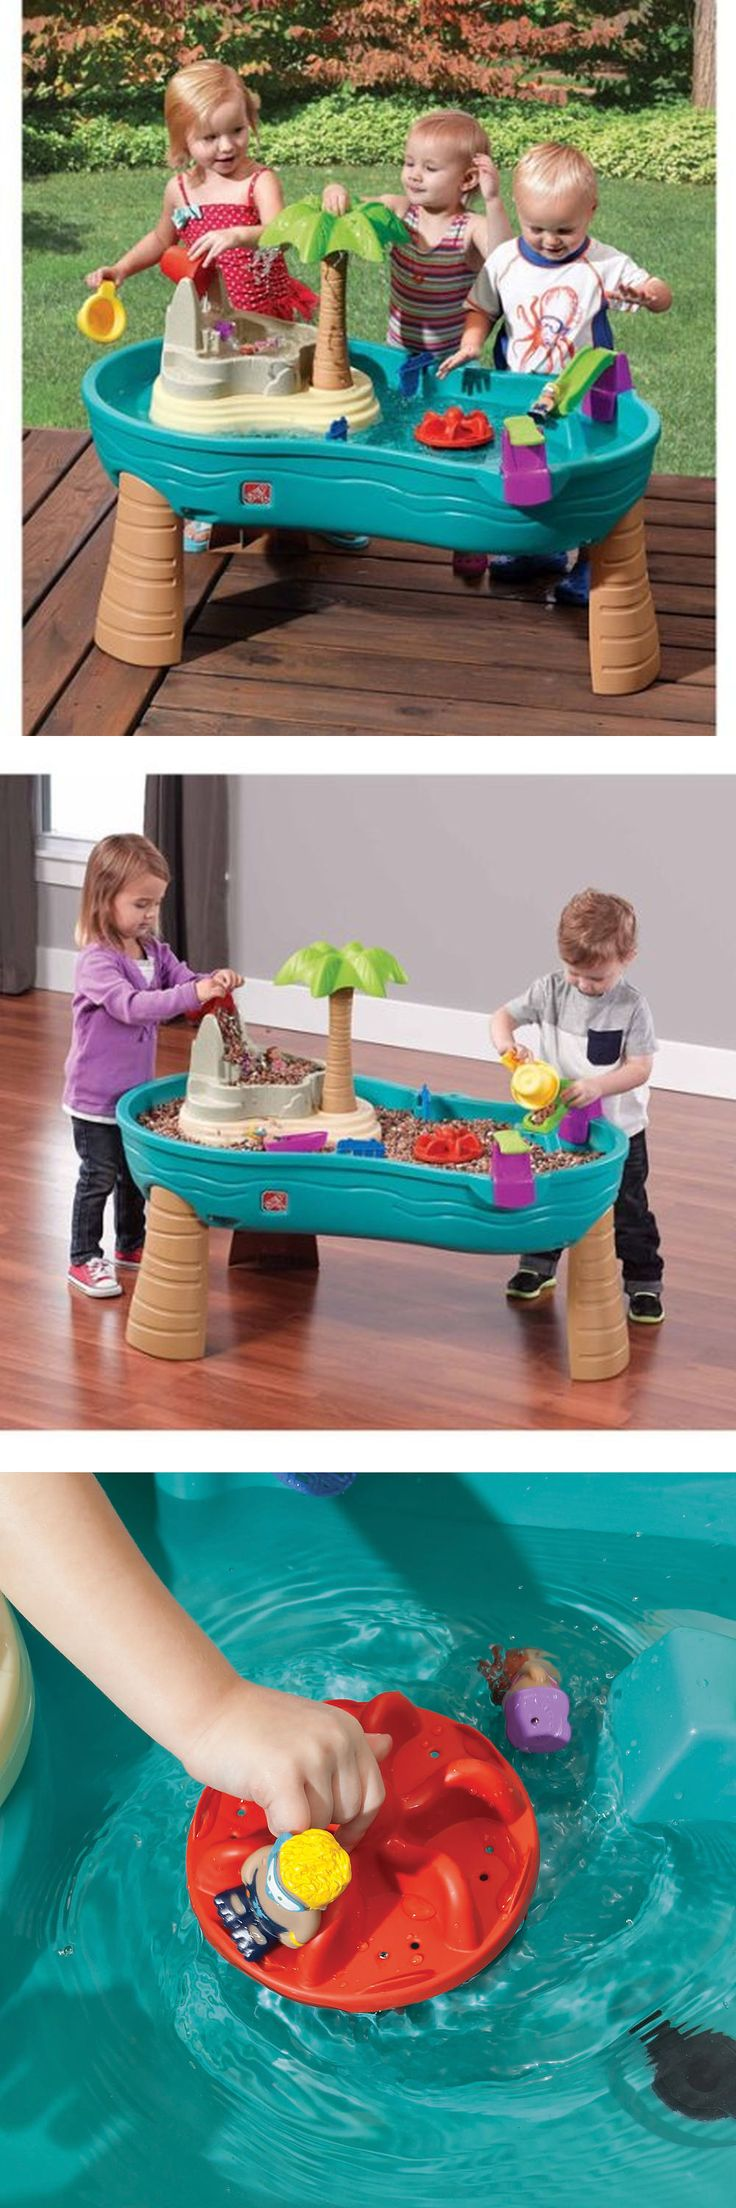 Step 2 52344: Water Play Table For Kids Toddlers Plastic Splish Splash Seas Toy Set In Outdoor -> BUY IT NOW ONLY: $98.99 on eBay!